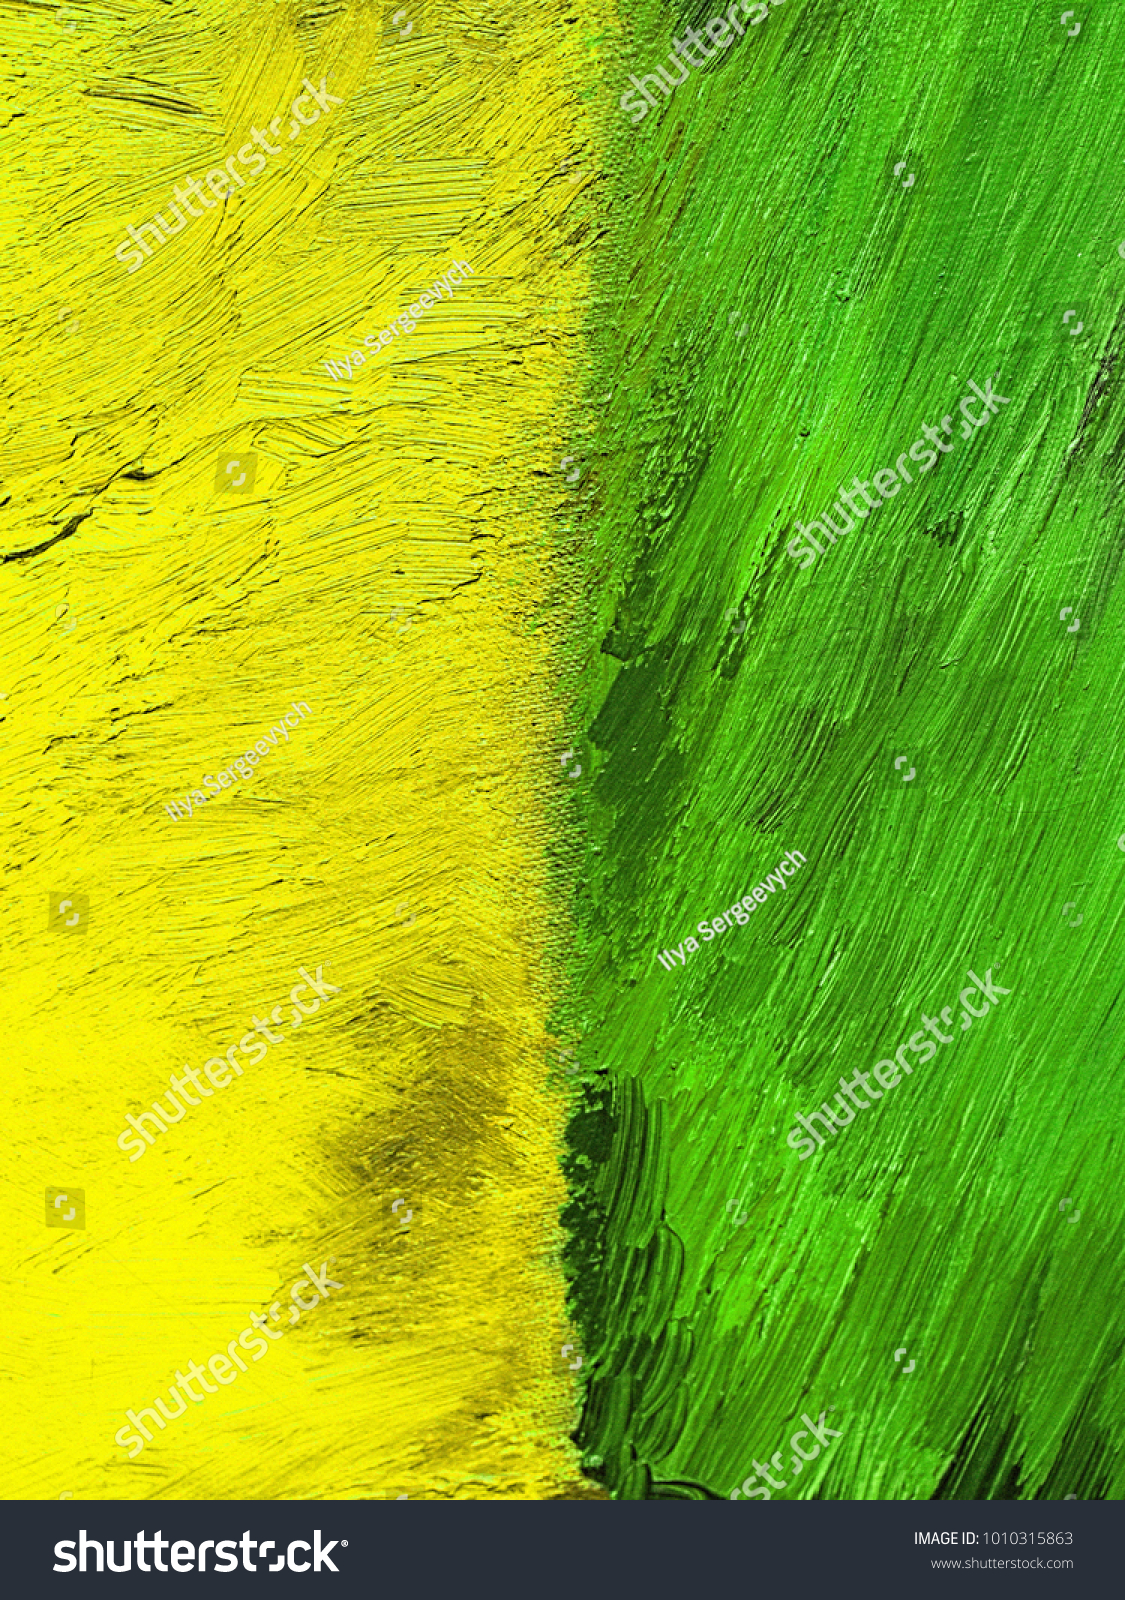 Canvas Hand Drawn Abstract Pale Green Stock Illustration 1010315863 ...